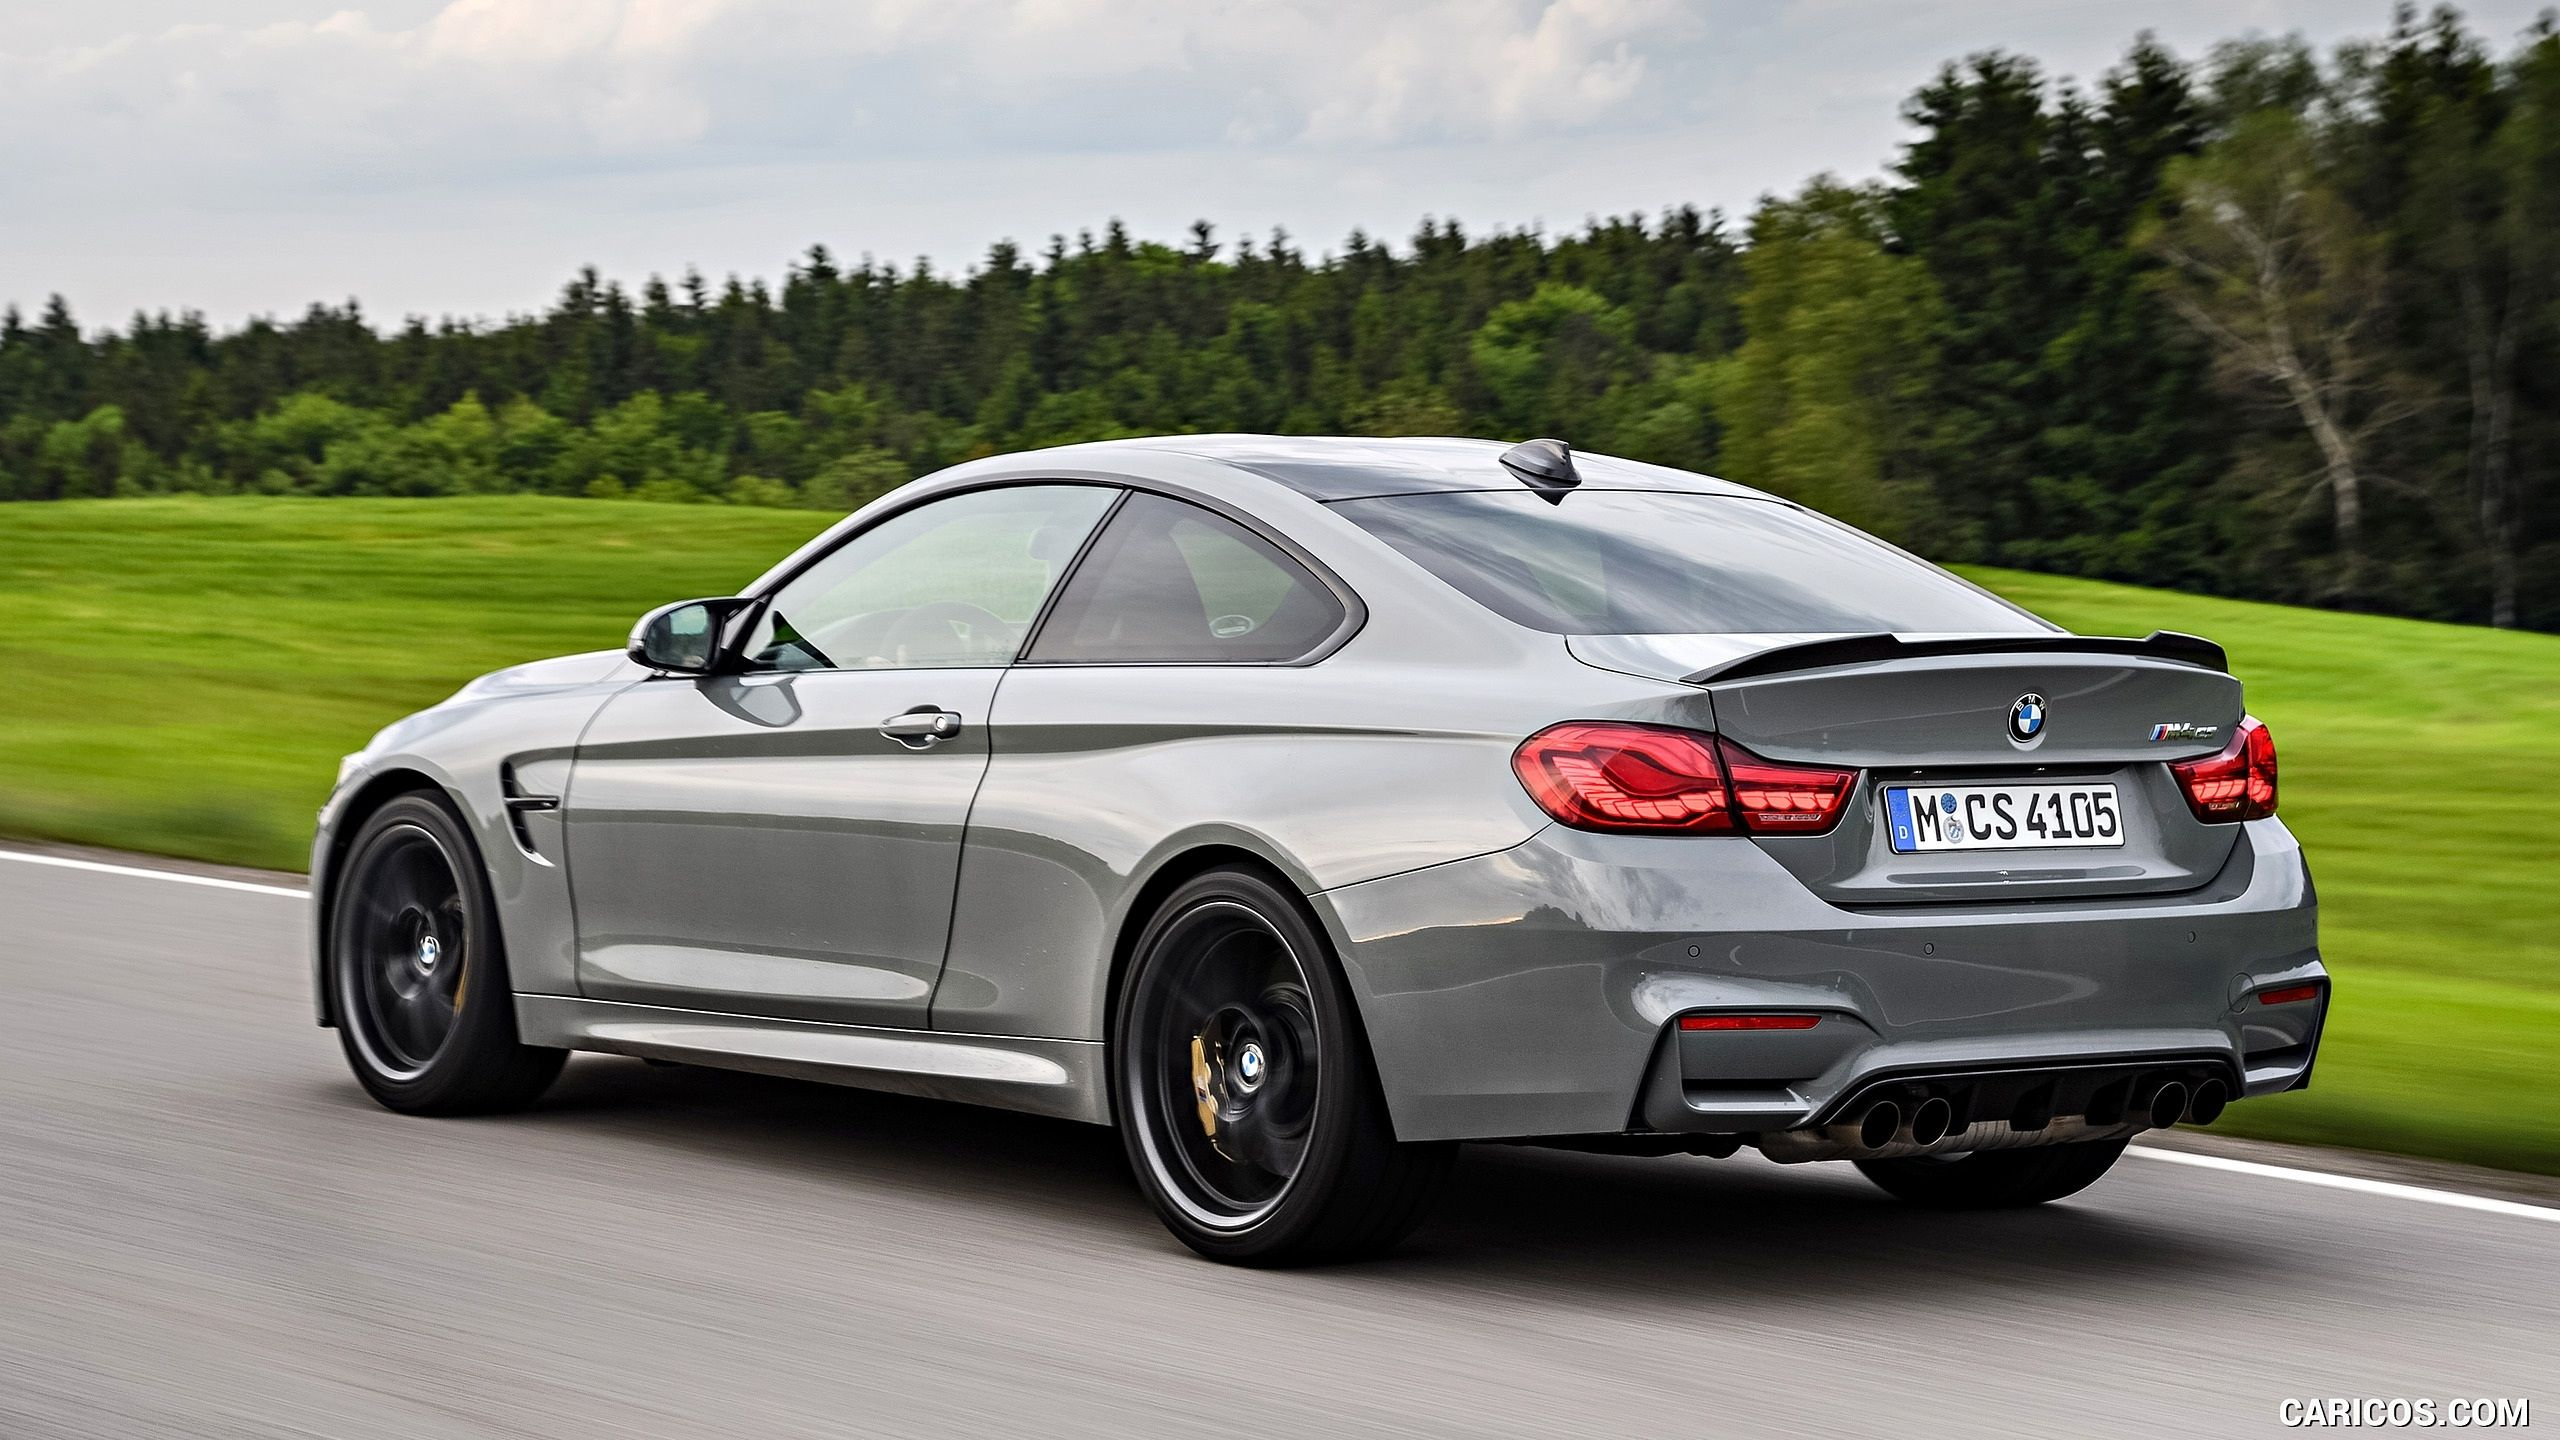 2020 Bmw M3 Convertible In 2020 Bmw Convertible Bmw Bmw M4